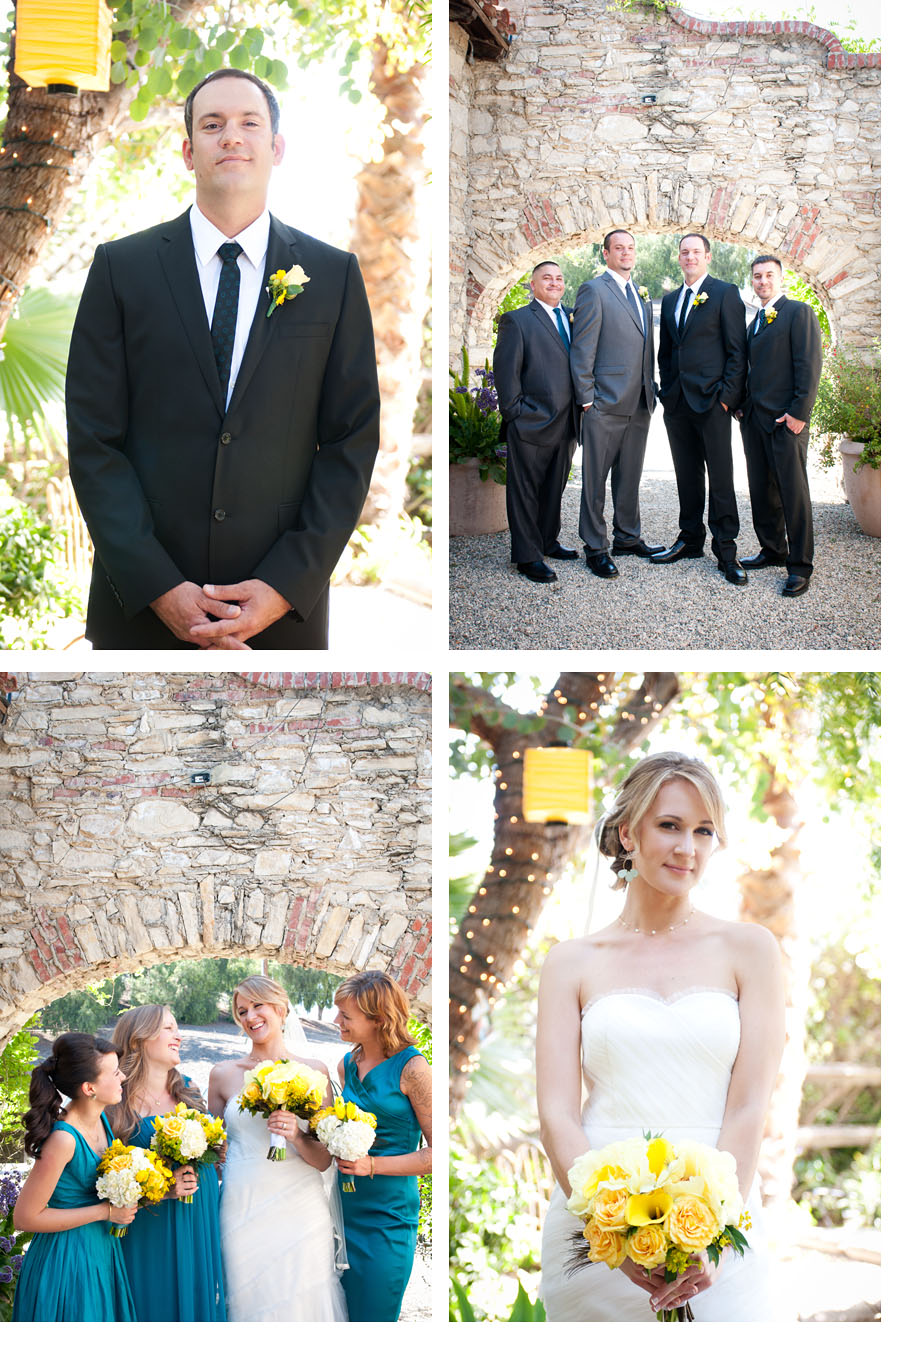 Shawn and Christina Wedding by Paola Nazati Photography